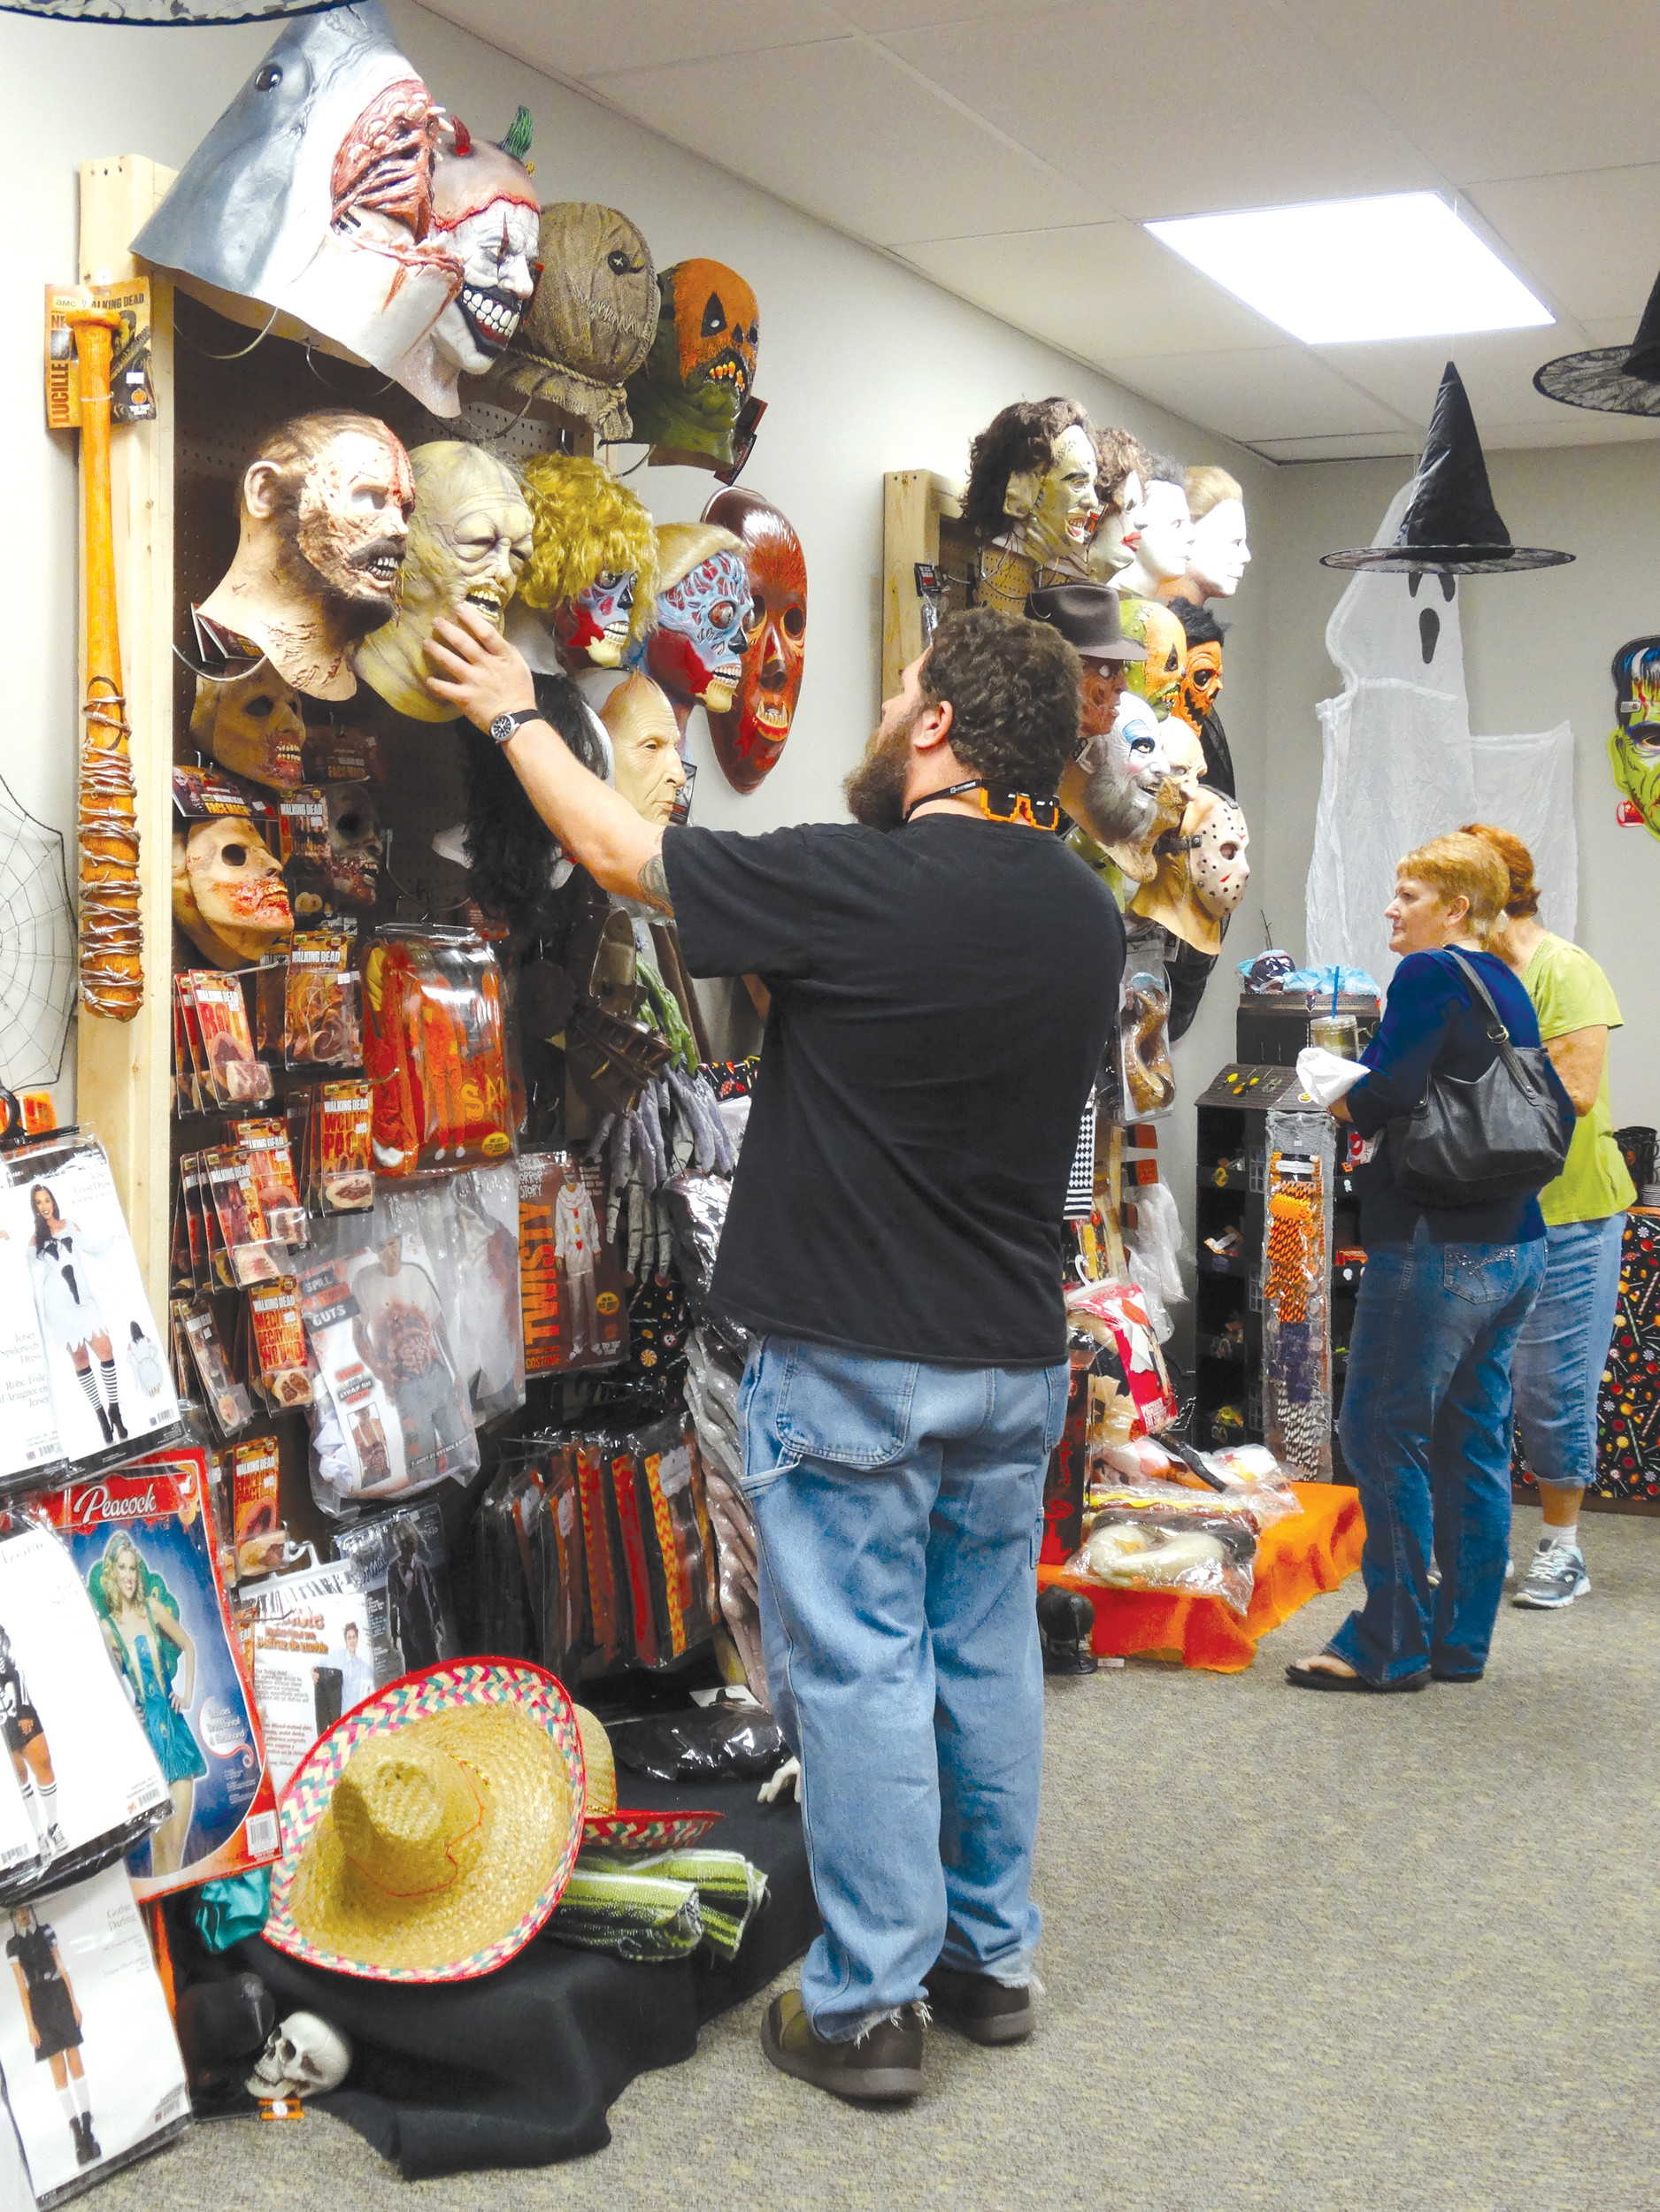 Jeff Whisnant of Sumter checks out a mask at M and M's Lil Shop o' Horrors on West Liberty Street on Tuesday afternoon. He said he'd heard about the Halloween shop on Facebook and that his friends were also interested in visiting the new store. It will be open through the first week of November and offers costumes and fall decorations.